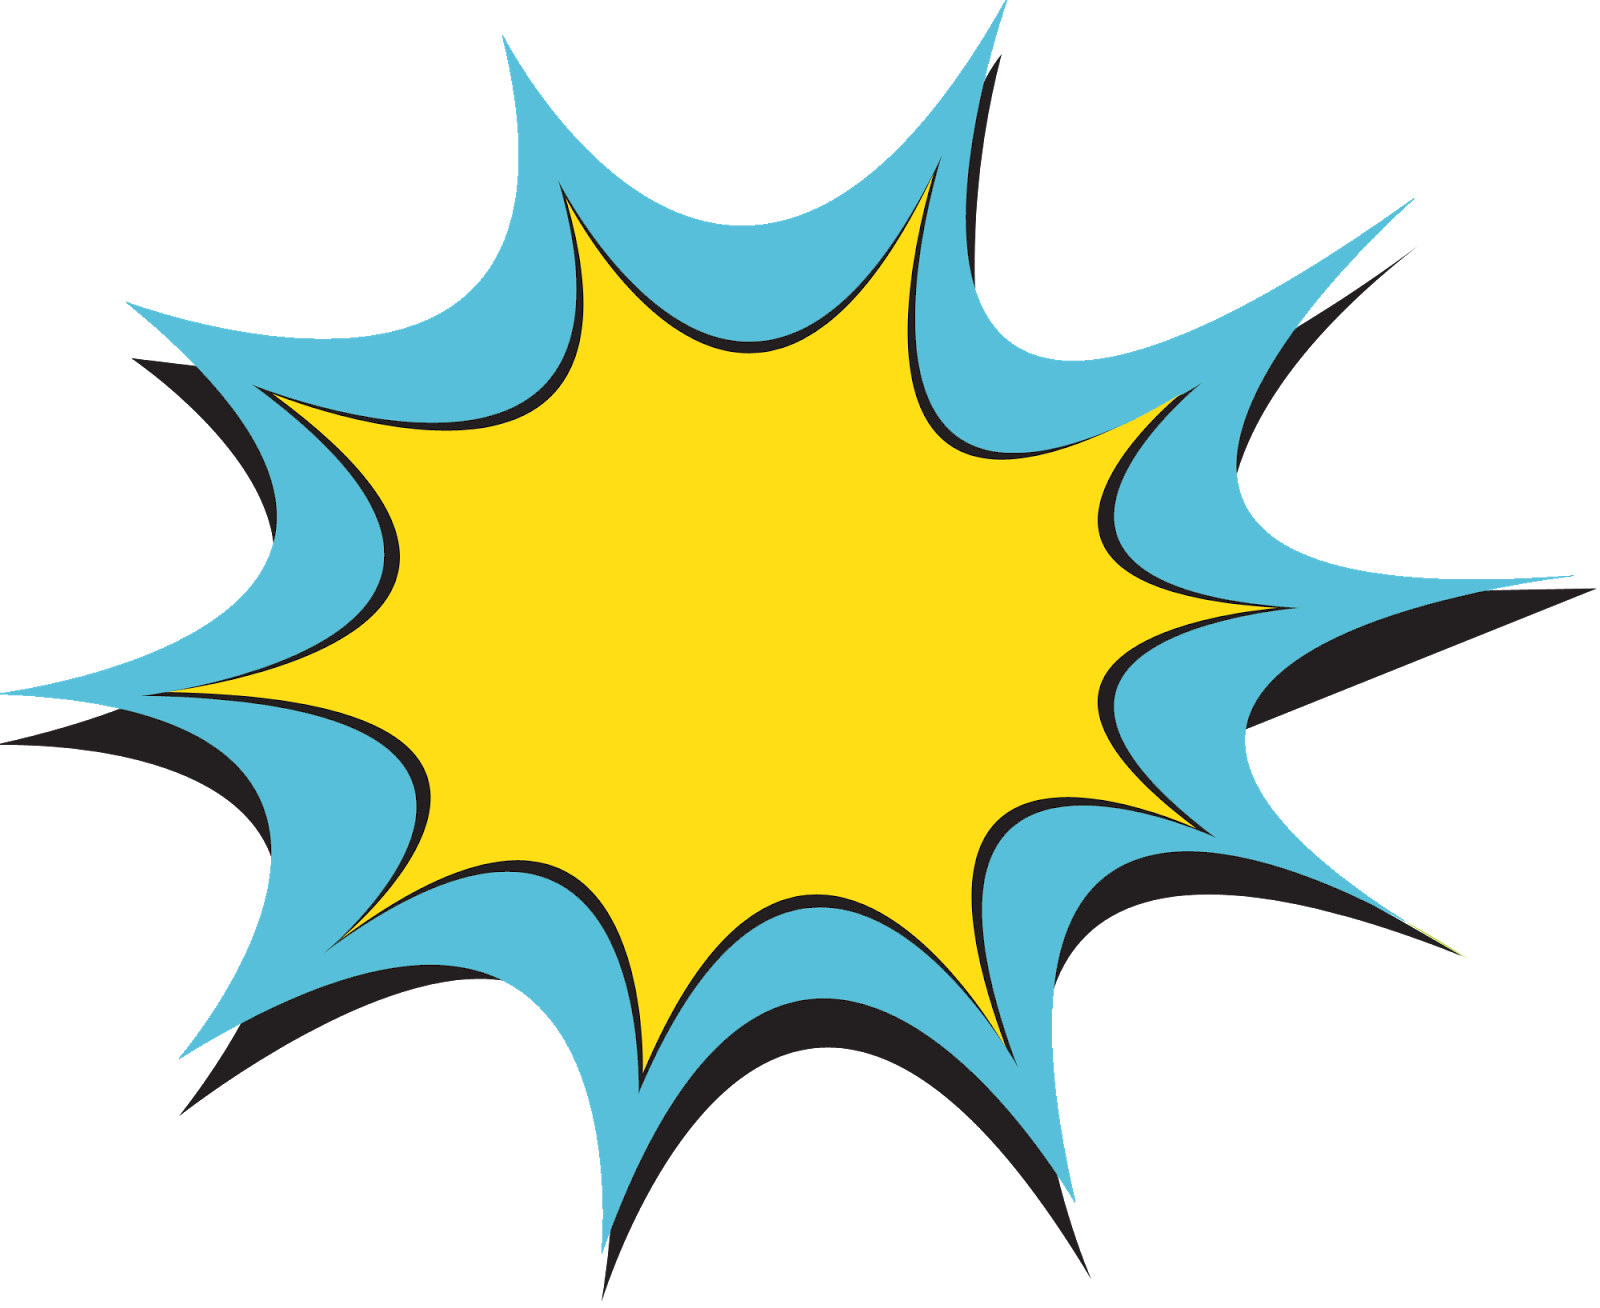 Batman throwing star clipart free ibyw4j7aym6V8M.png (1600×1308) | Holidays and events | Pinterest ... free